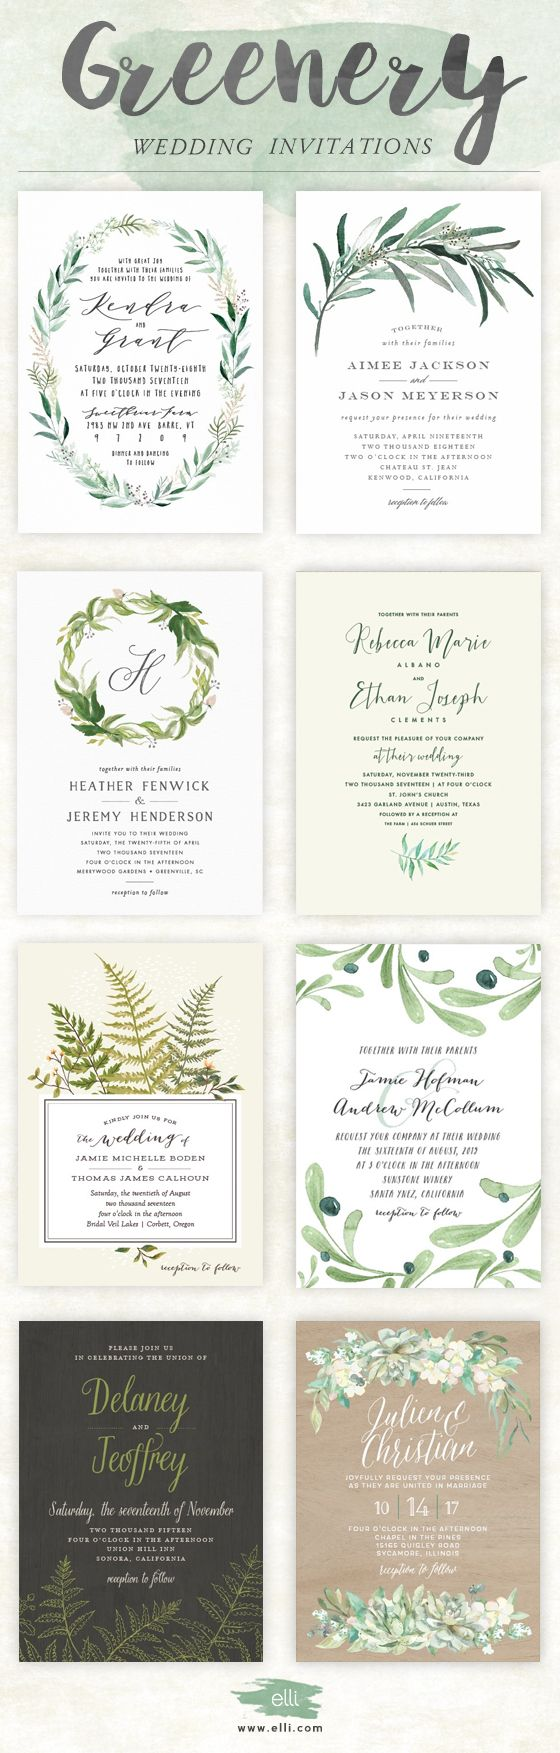 templates for wedding card design%0A Trending for       greenery wedding invitations from Elli com